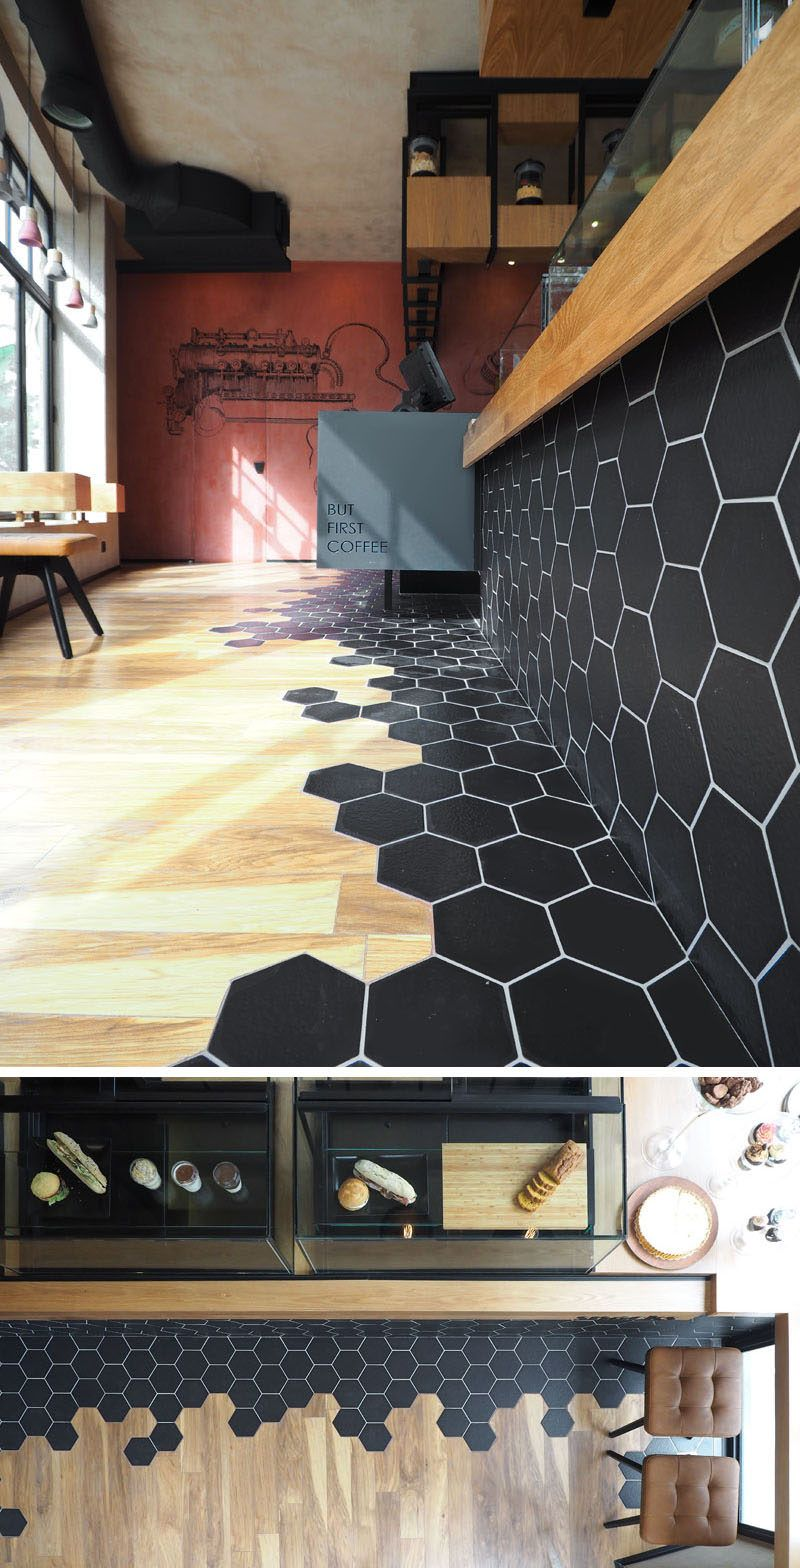 Hexagon tiles transition into wood flooring inside this cafe in black hexagon tiles and wood laminate flooring are a design element in this modern cafe ppazfo